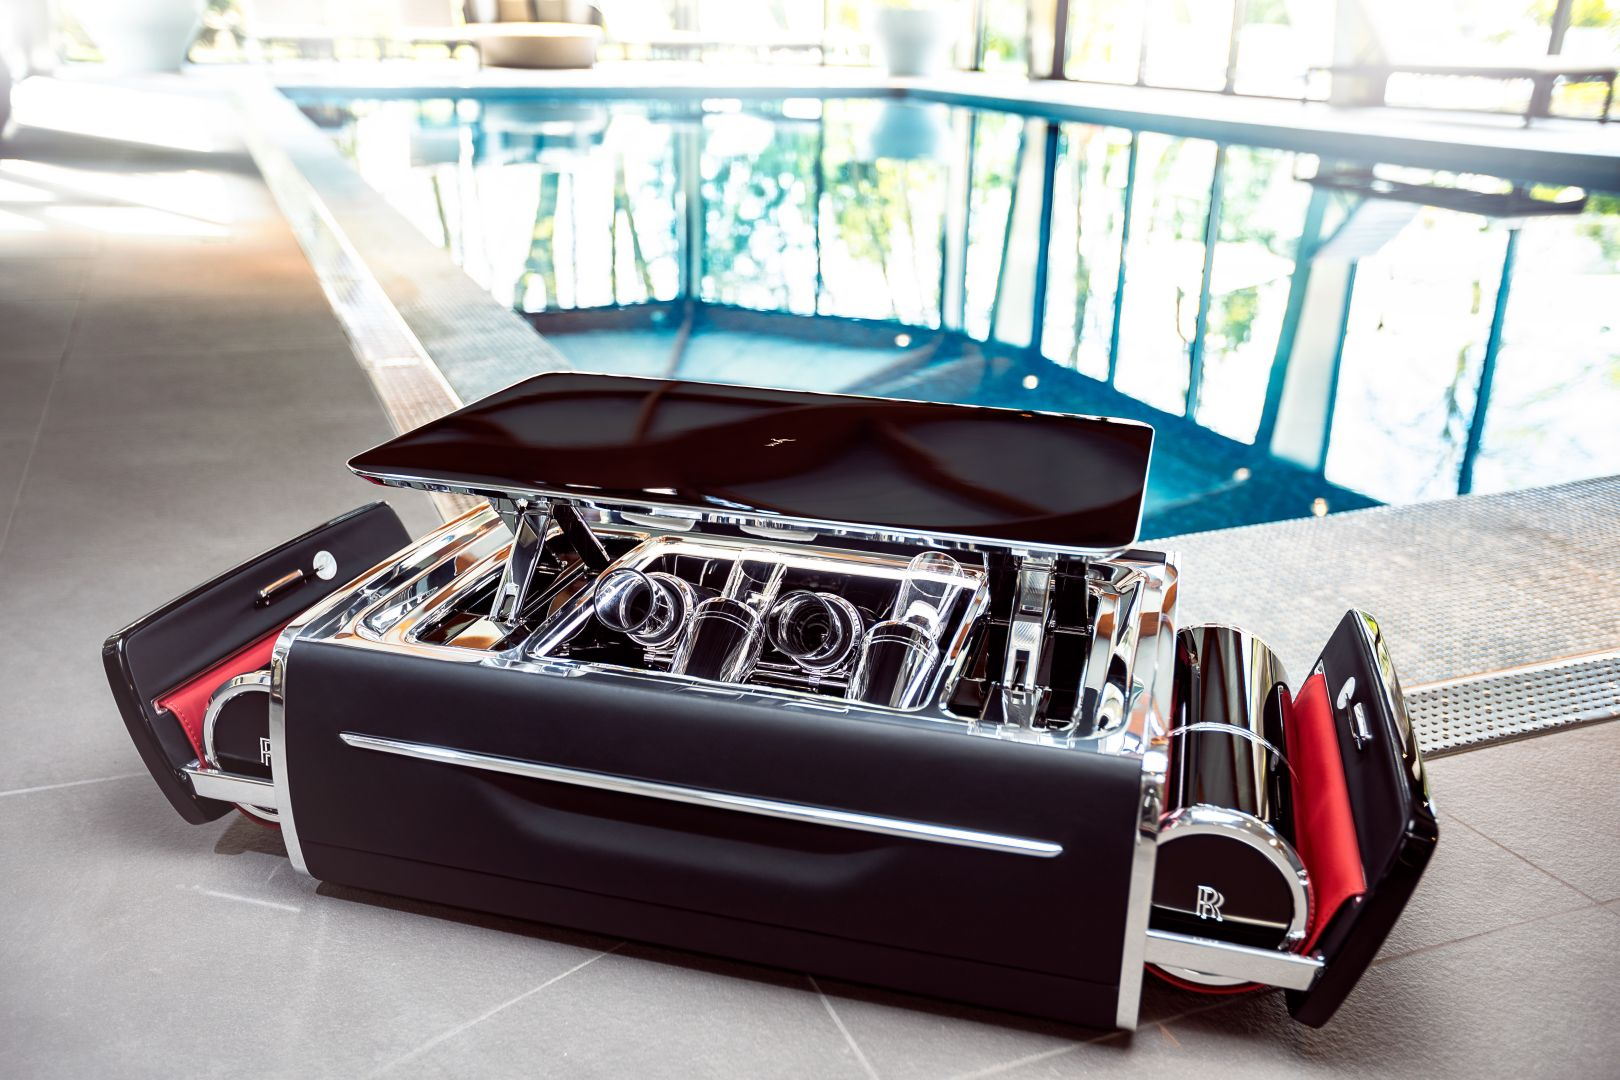 Rolls-Royce Creates the World's Best Champagne Chest